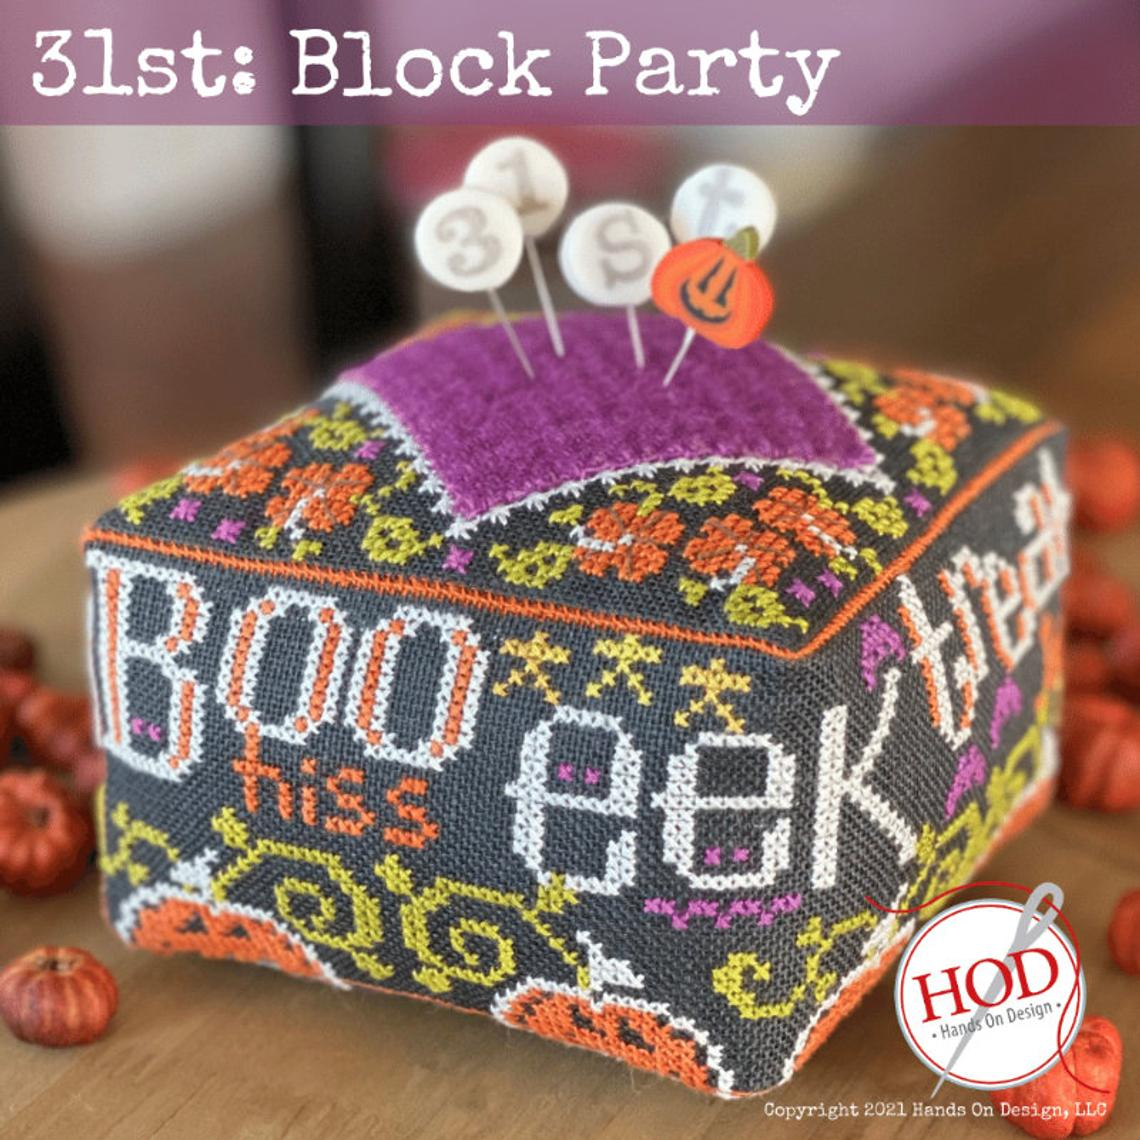 hd234 25th Hands On Design Block Party Pincushion